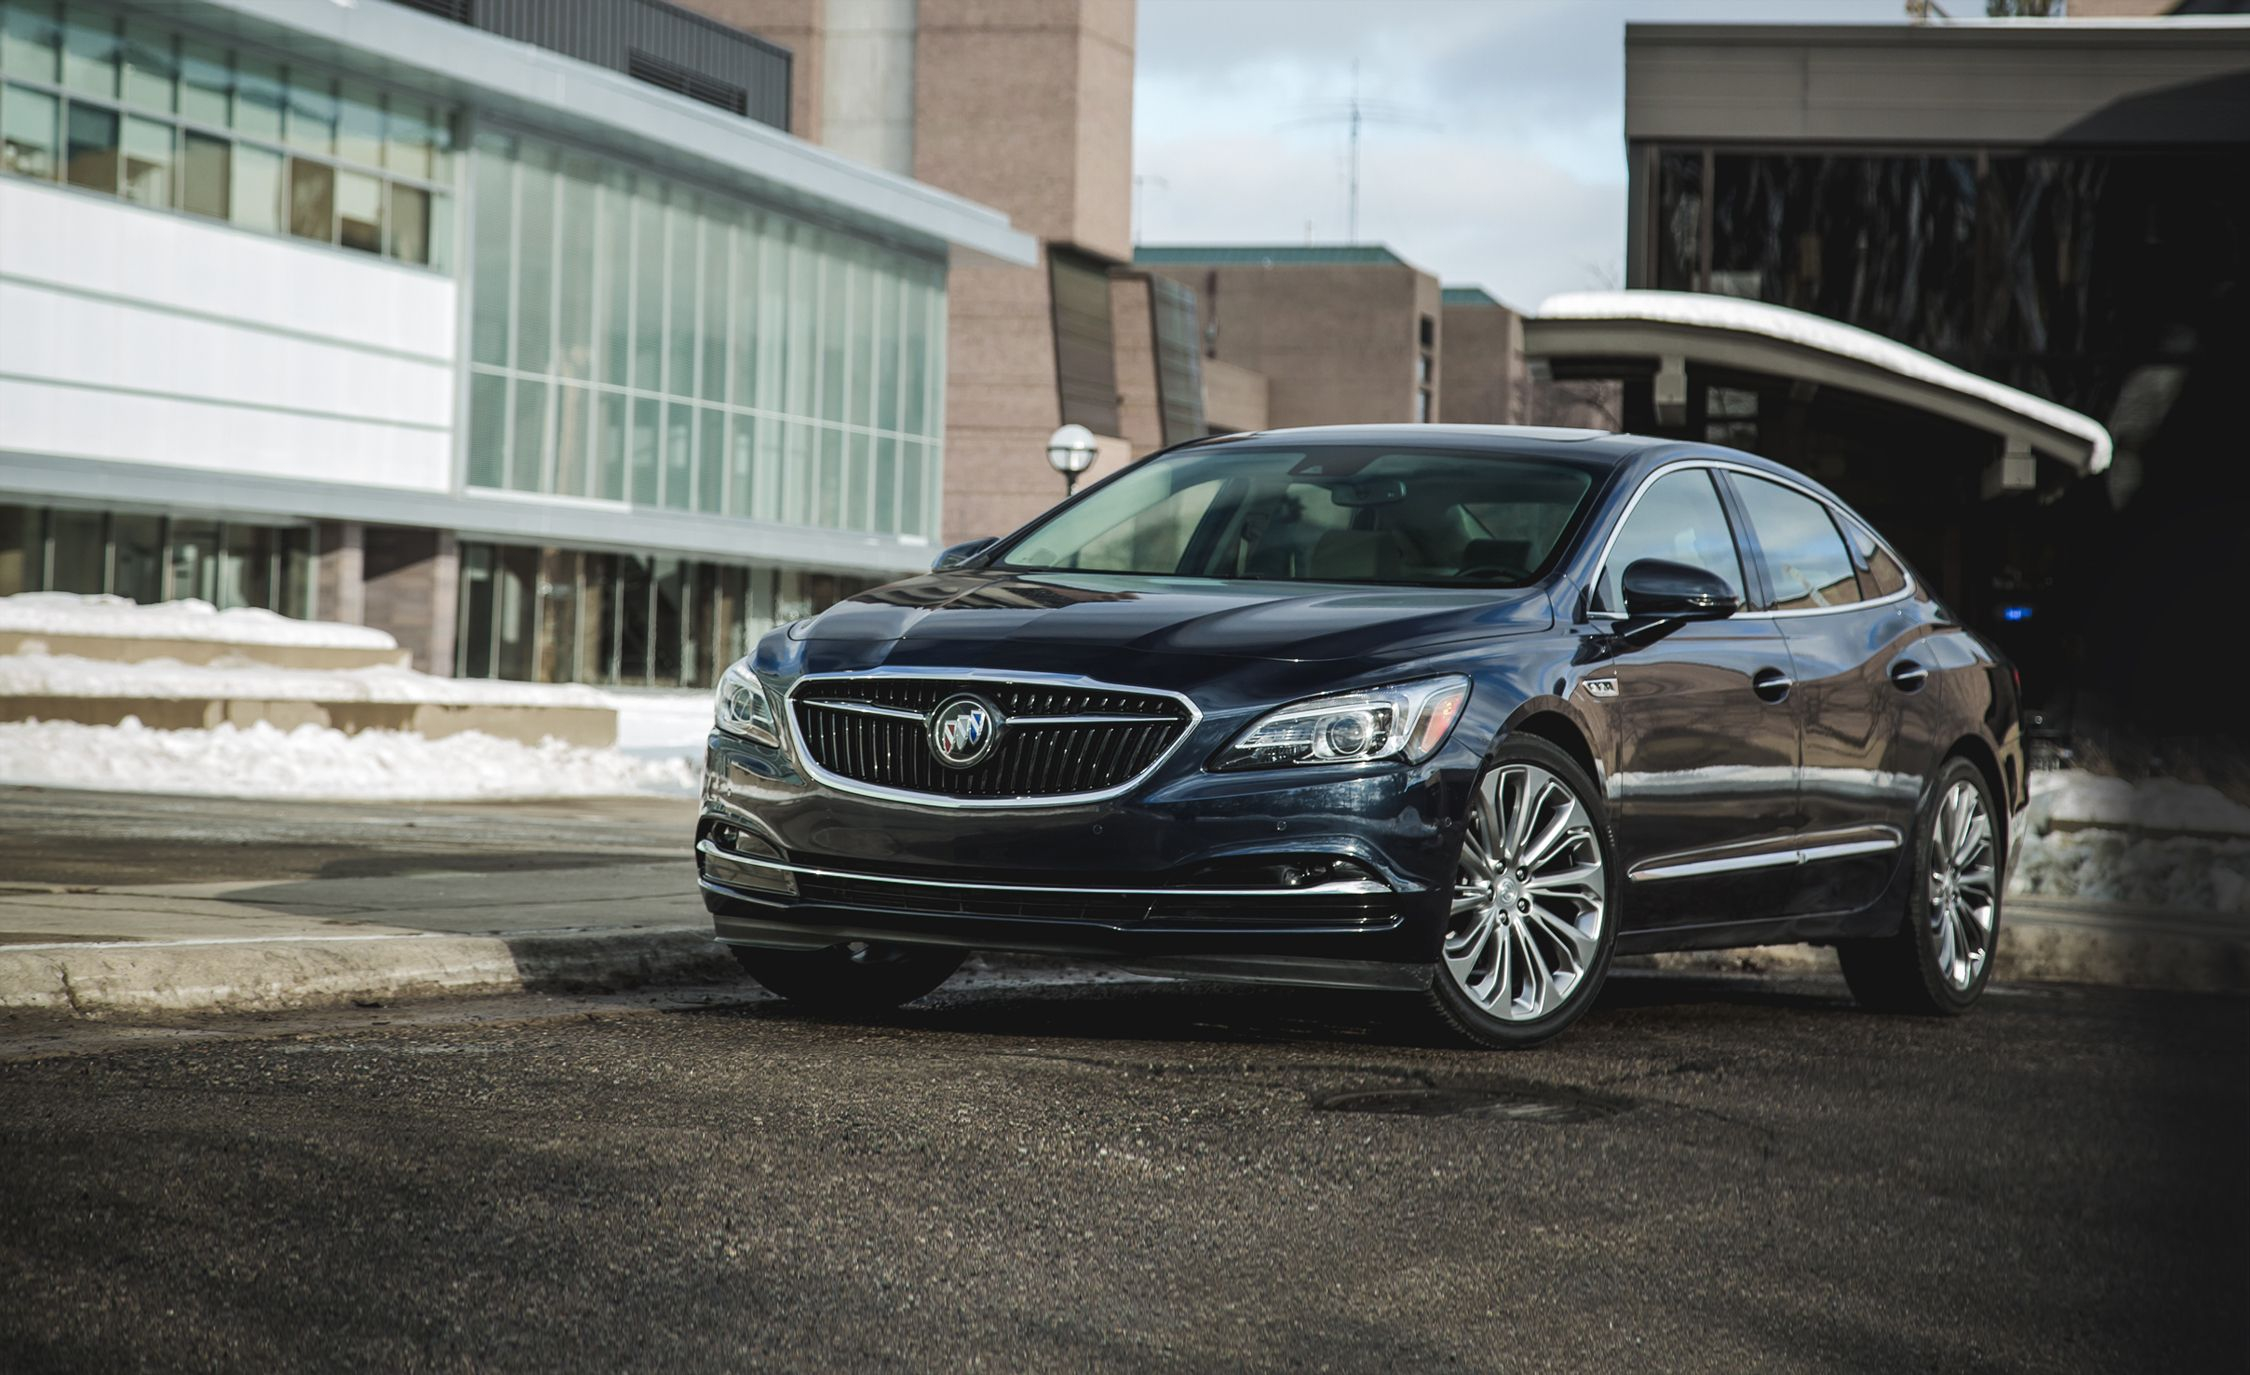 2018 Buick Lacrosse Mild Hybrid Raises Mpgs, Lowers The New 2021 Buick Lacrosse Lease Deals, Engine, Price